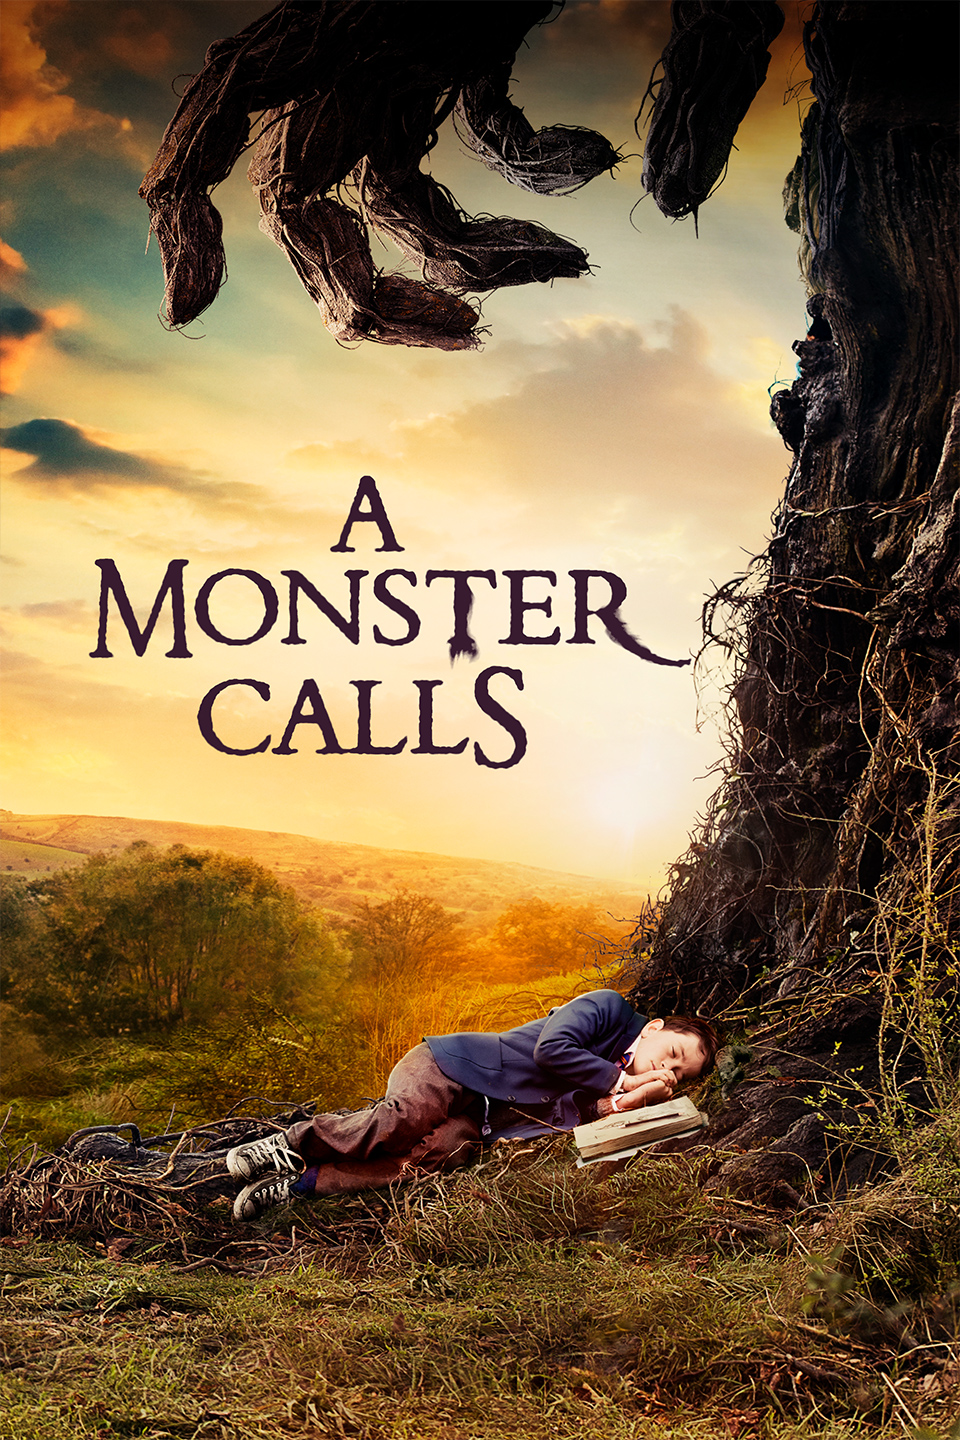 A Monster Calls (2016) 720p BluRay x264 AAC ESub English 800MB